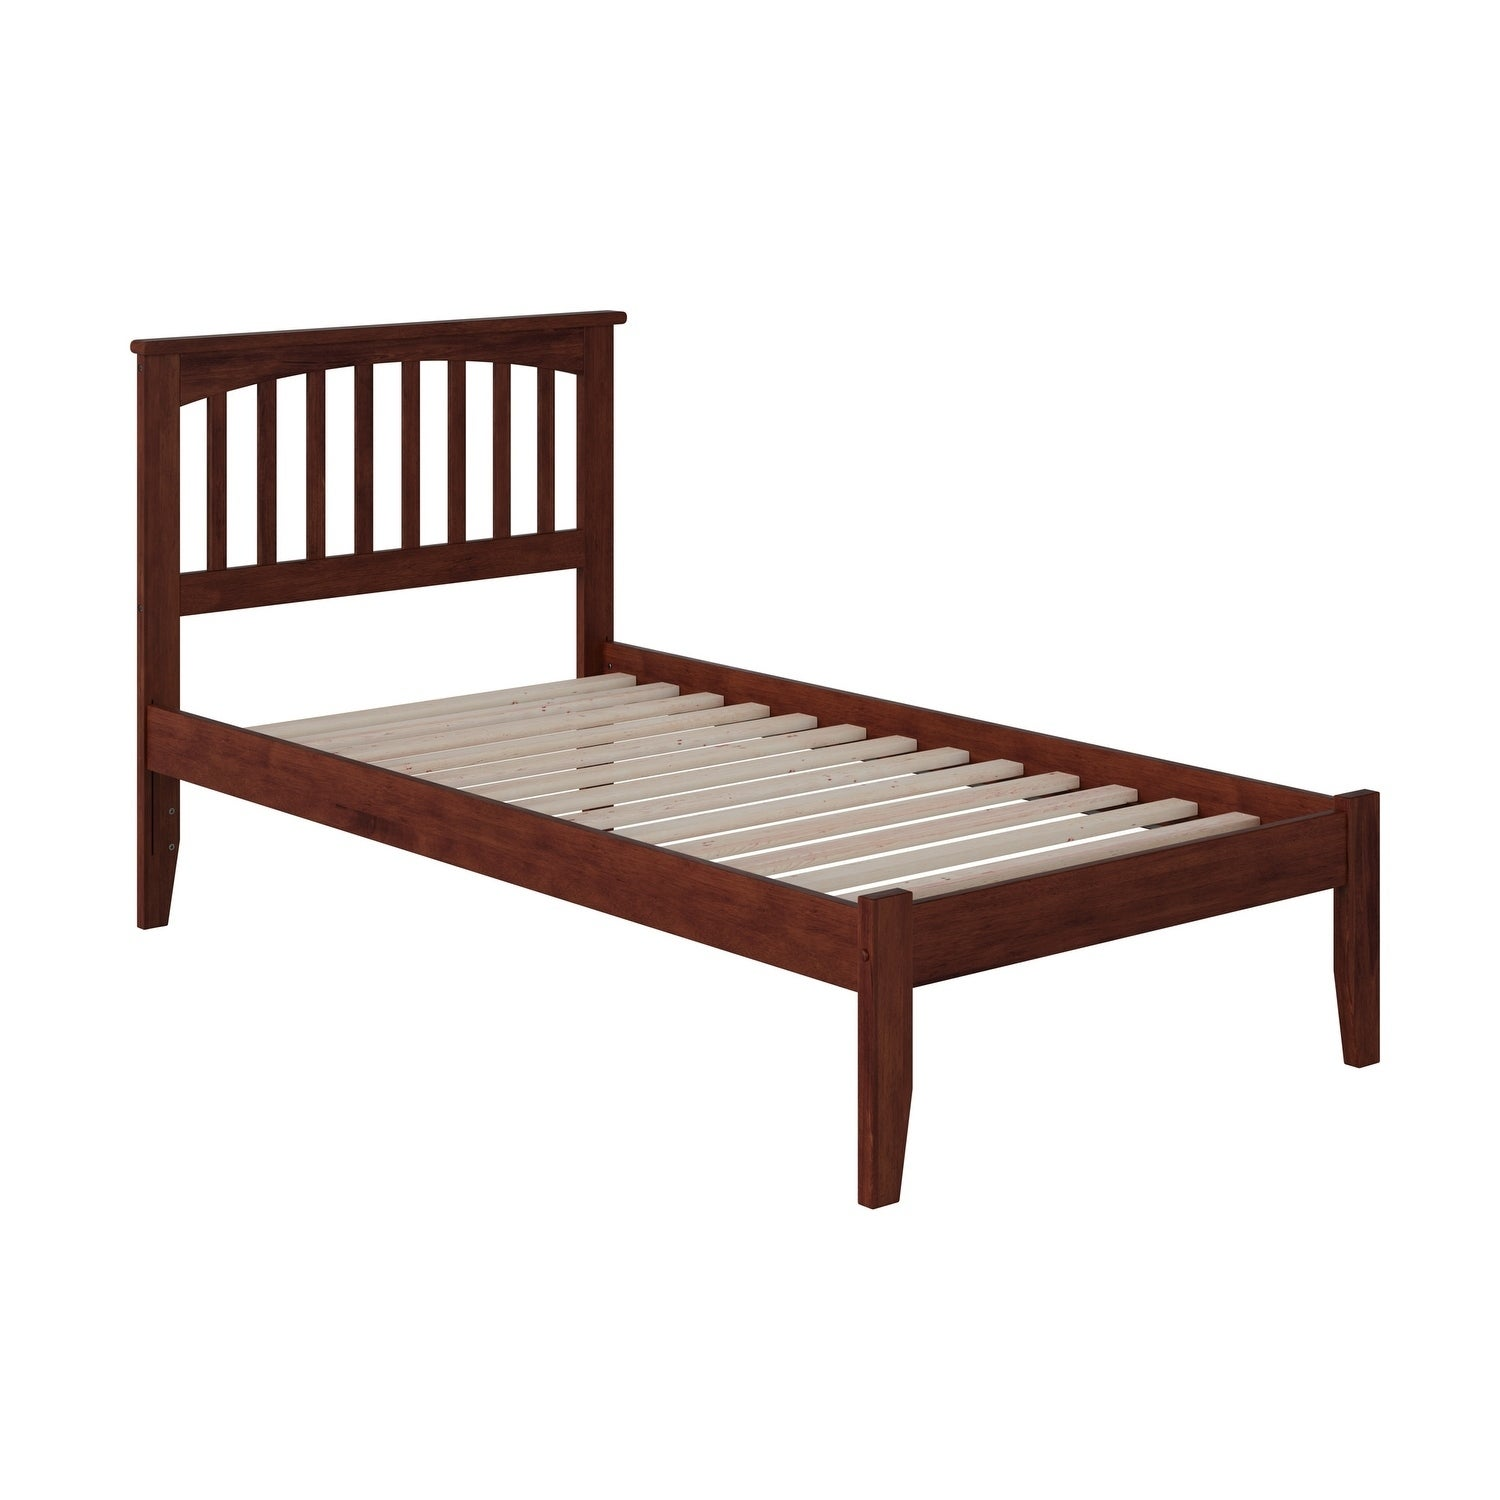 Full xl bed frame wood Beds Accessories Compare Prices at Nextag